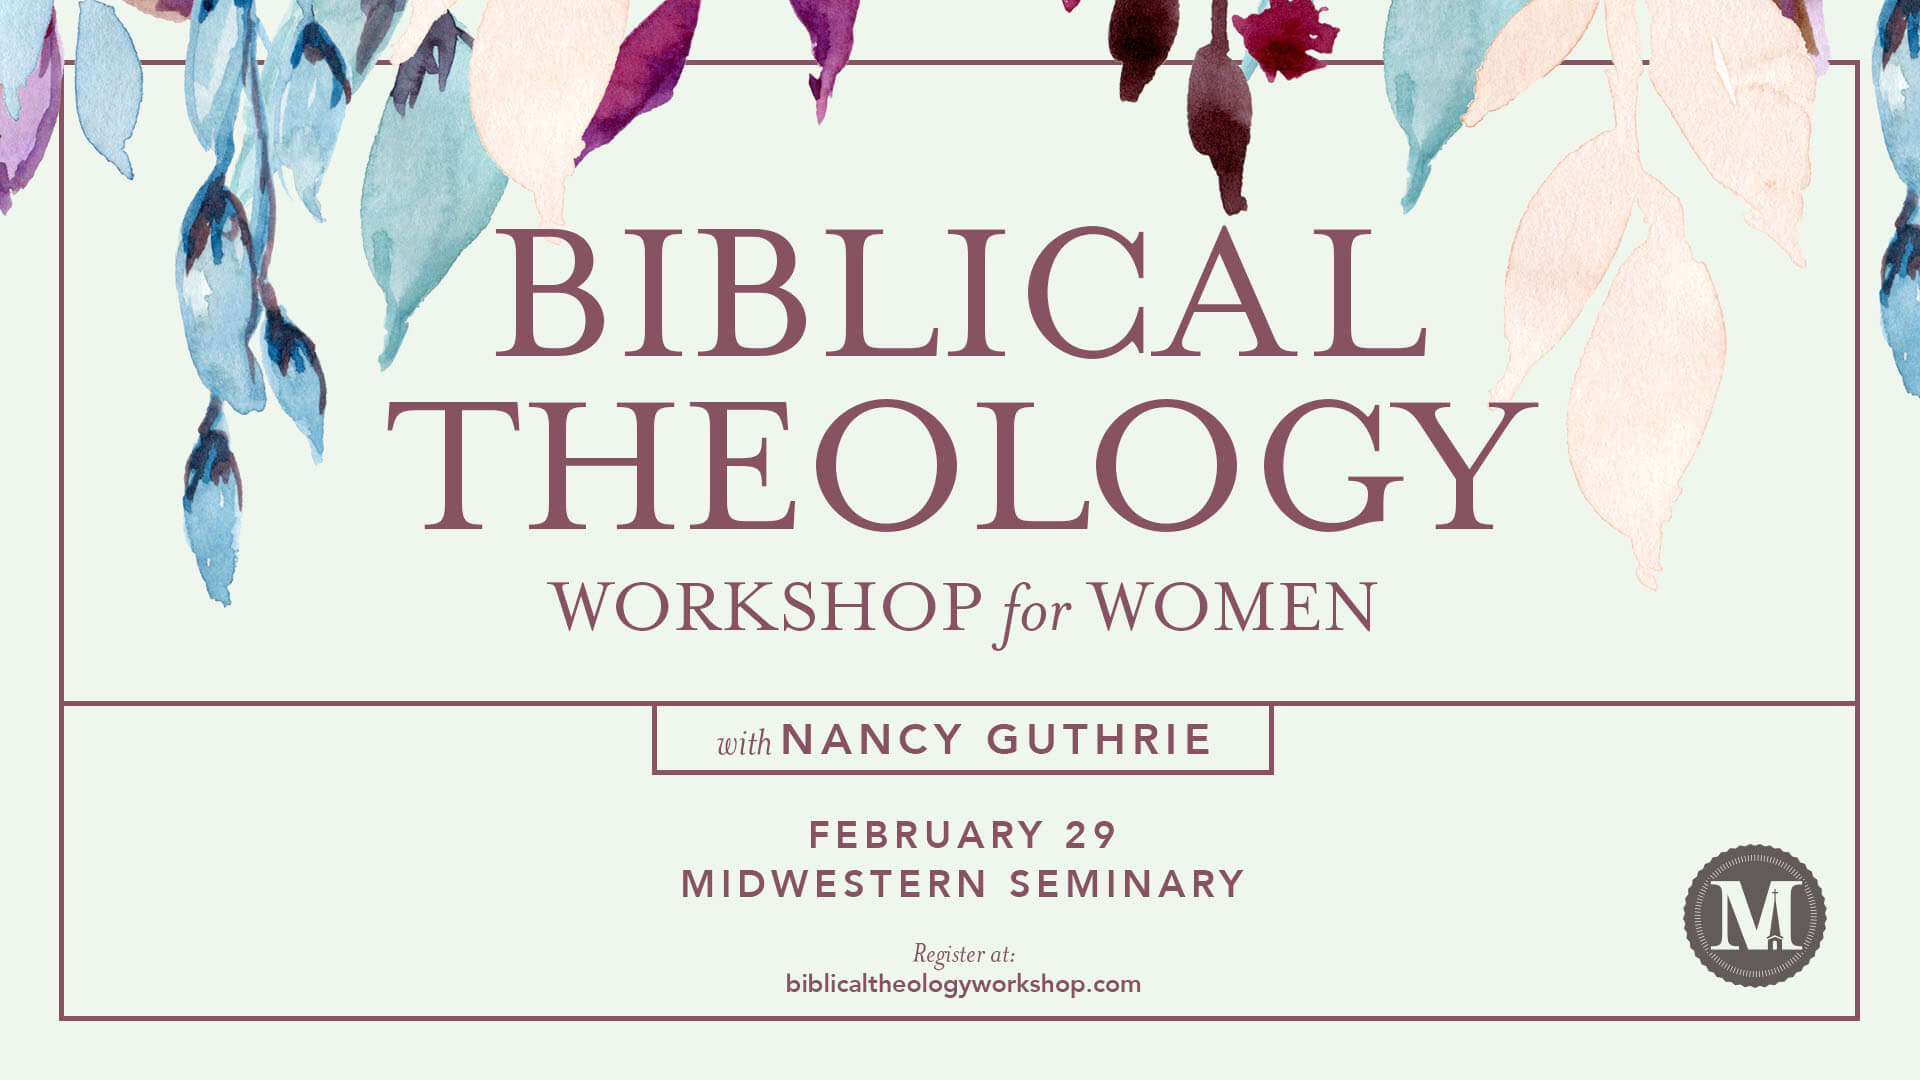 Biblical Theology Workshop for Women